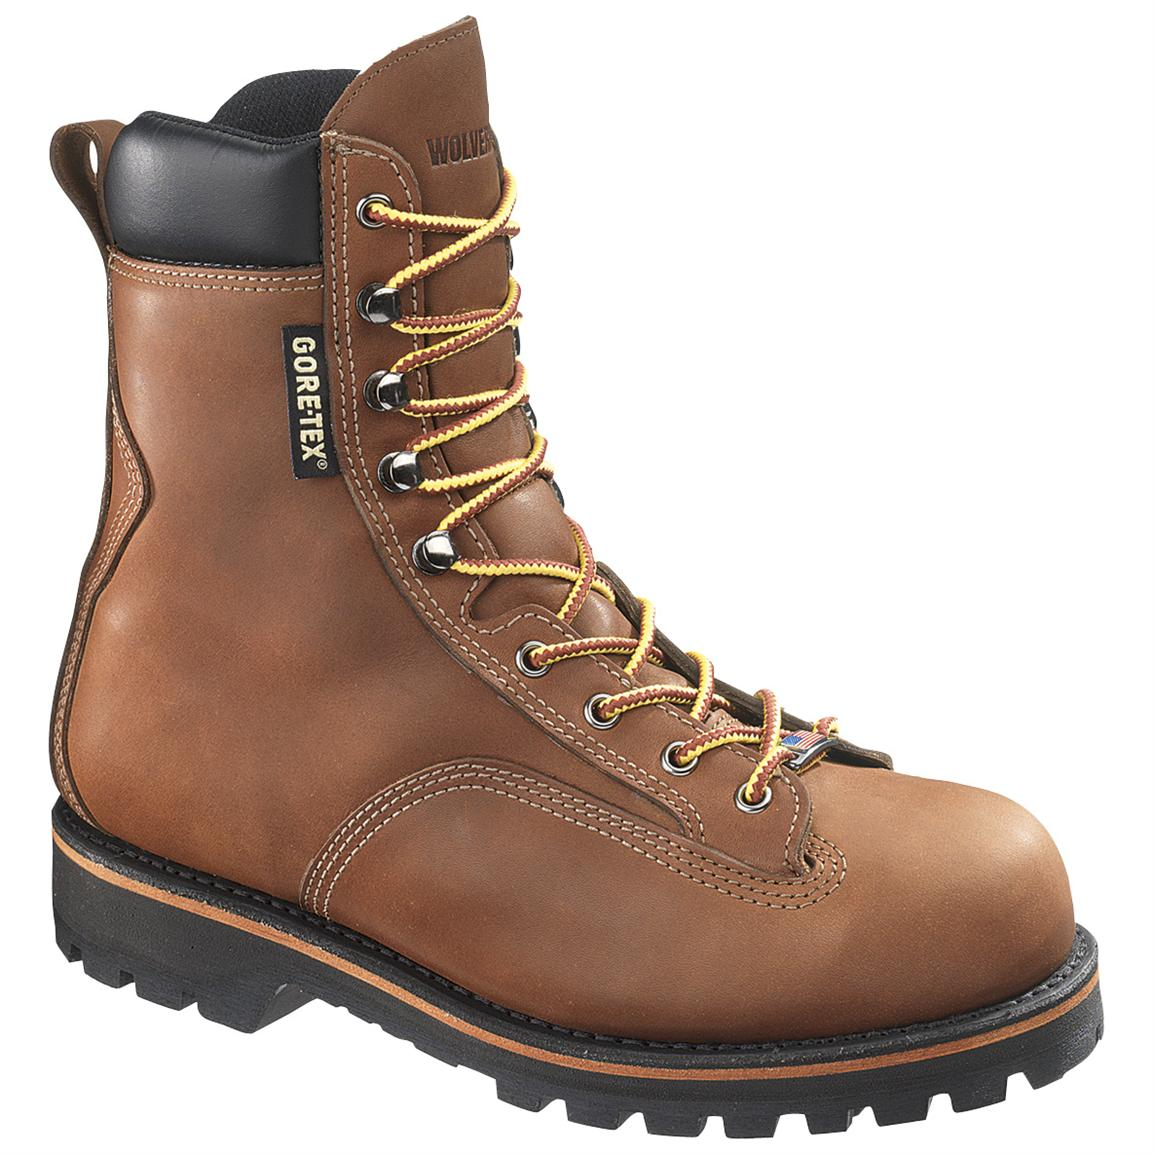 Men's Wolverine® 8 inch Northman GORE-TEX® Steel Toe EH Boots, Brown